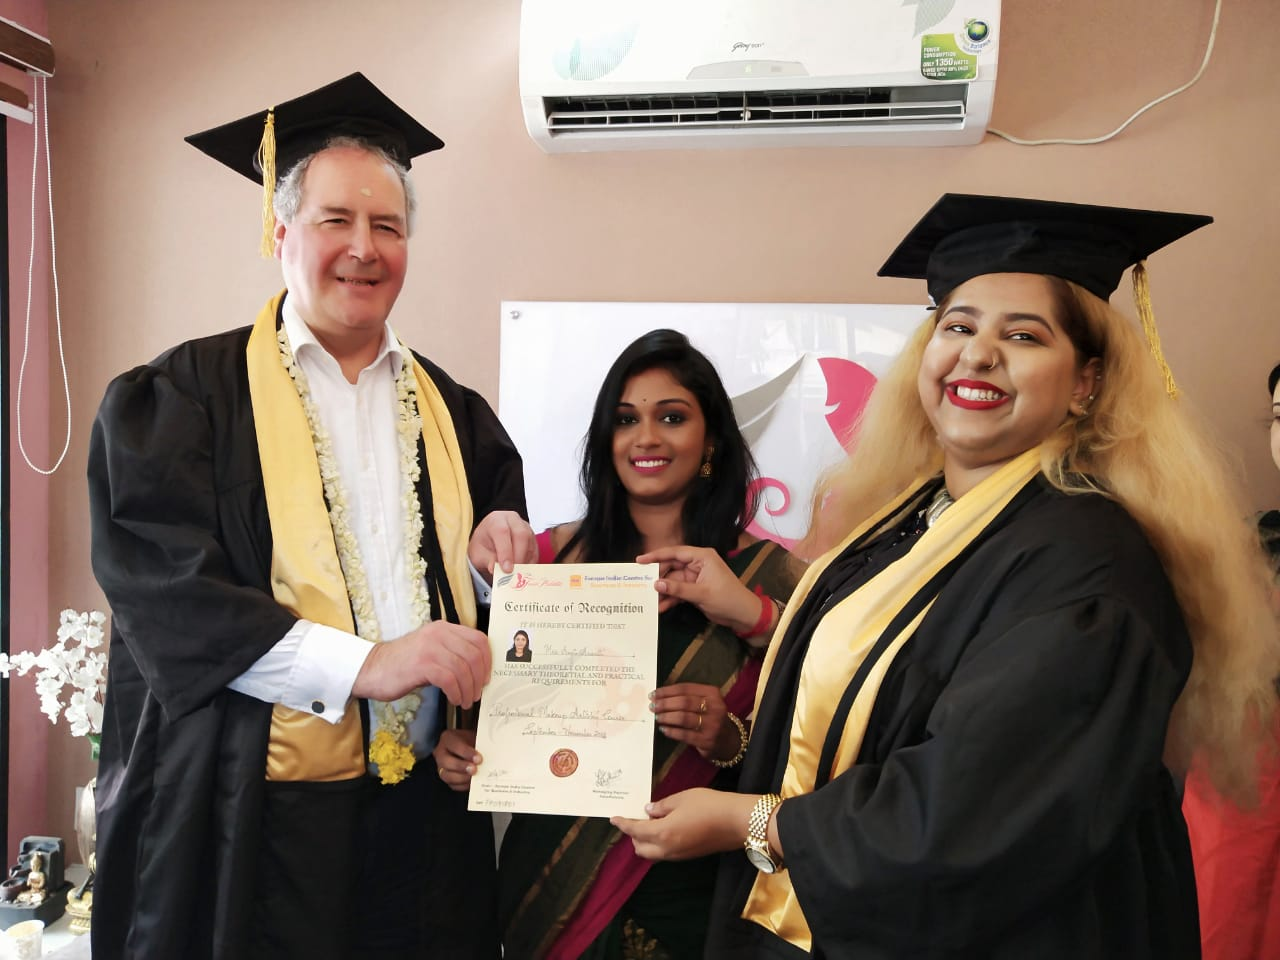 Graduation with Bob Blackman British MP